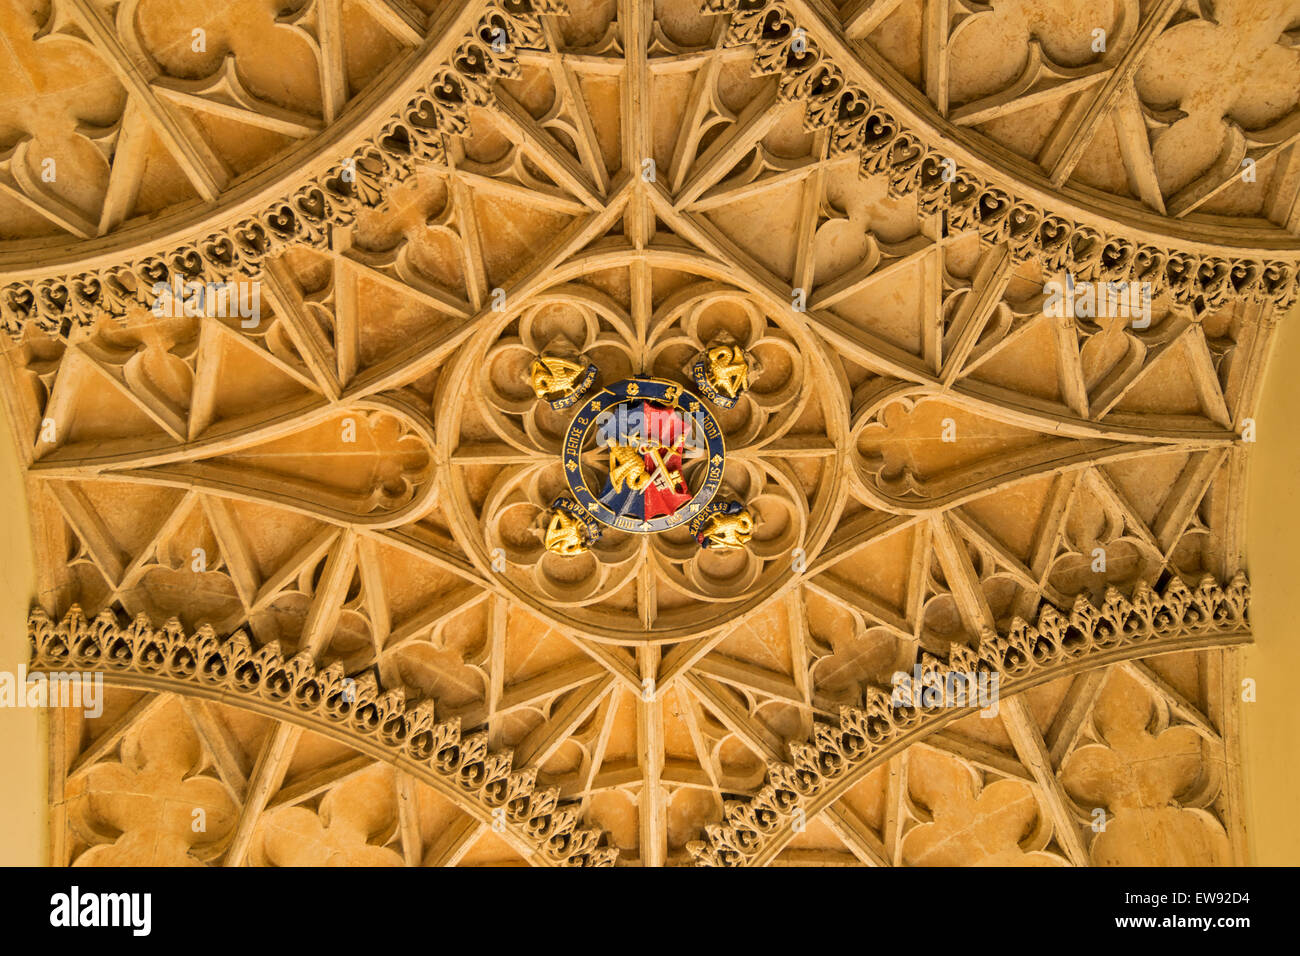 OXFORD CITY CORPUS CHRISTI COLLEGE  THE ENTRANCE AND CEILING DECORATION WITH COAT OF ARMS - Stock Image